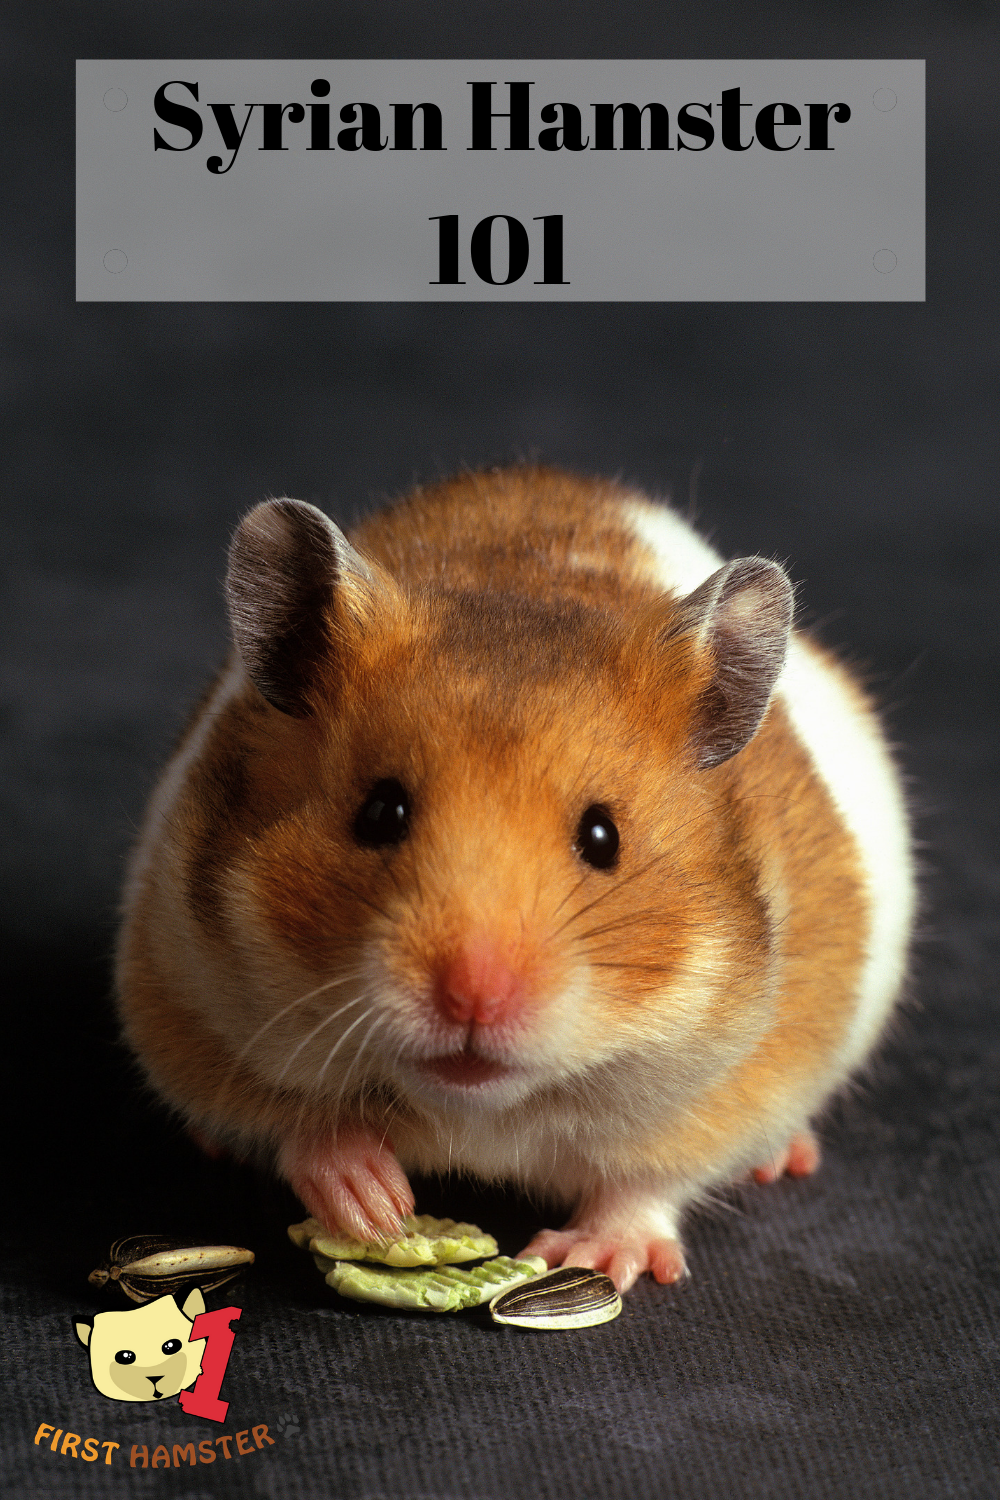 Syrian Hamster 101 Breed Info And Care Sheet Hamster Food Syrian Hamster Hamster